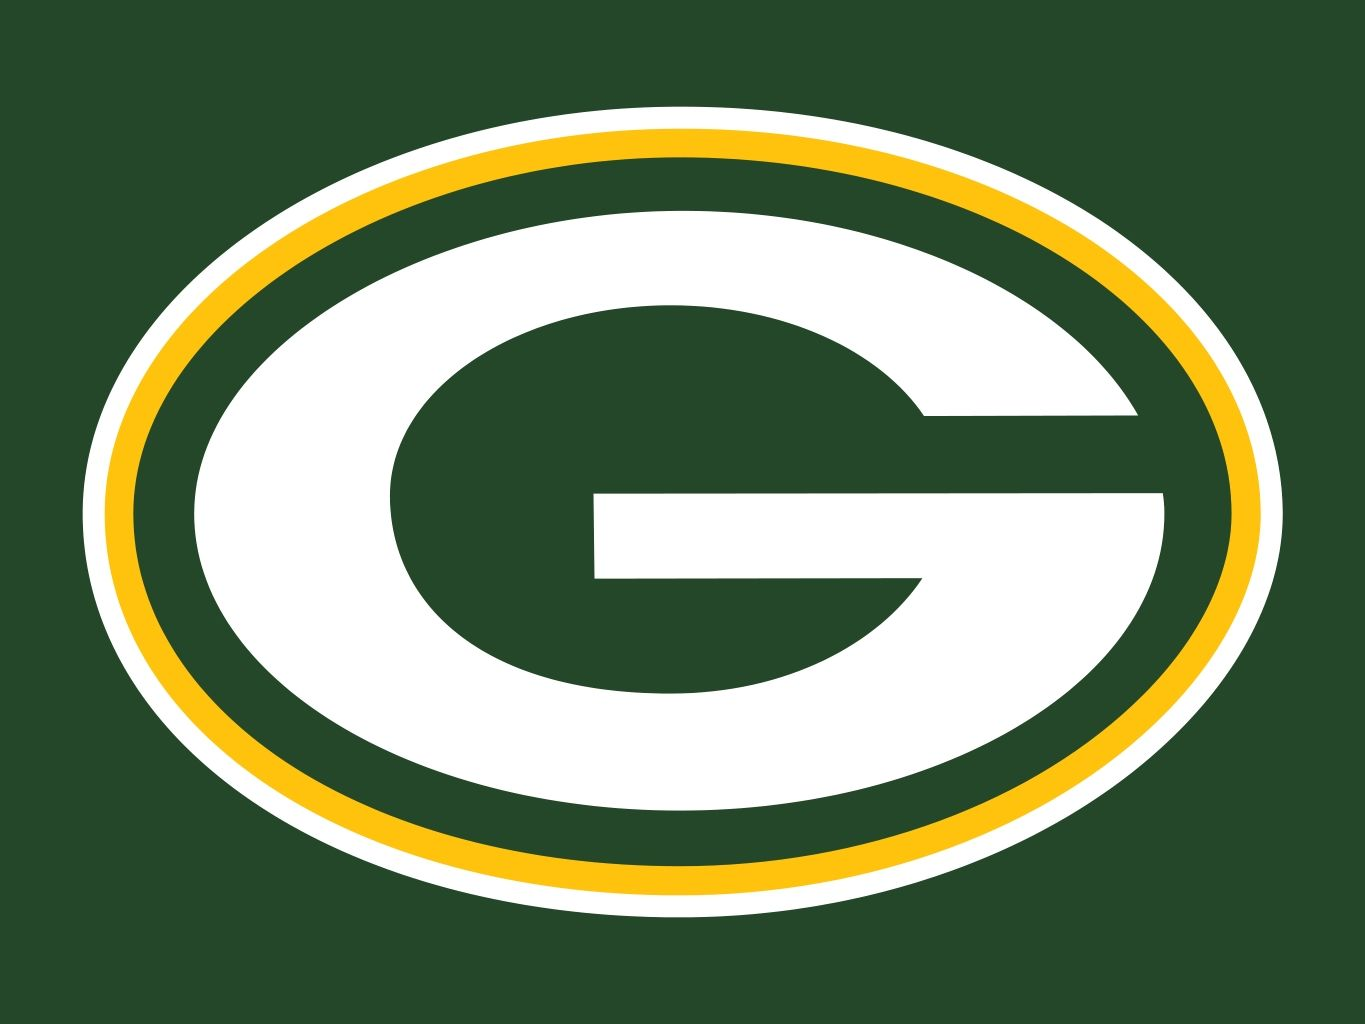 Green Bay Packers Position Battles To Watch For 2013 Nfl Season Green Bay Packers Logo Green Bay Packers Pictures Green Bay Packers